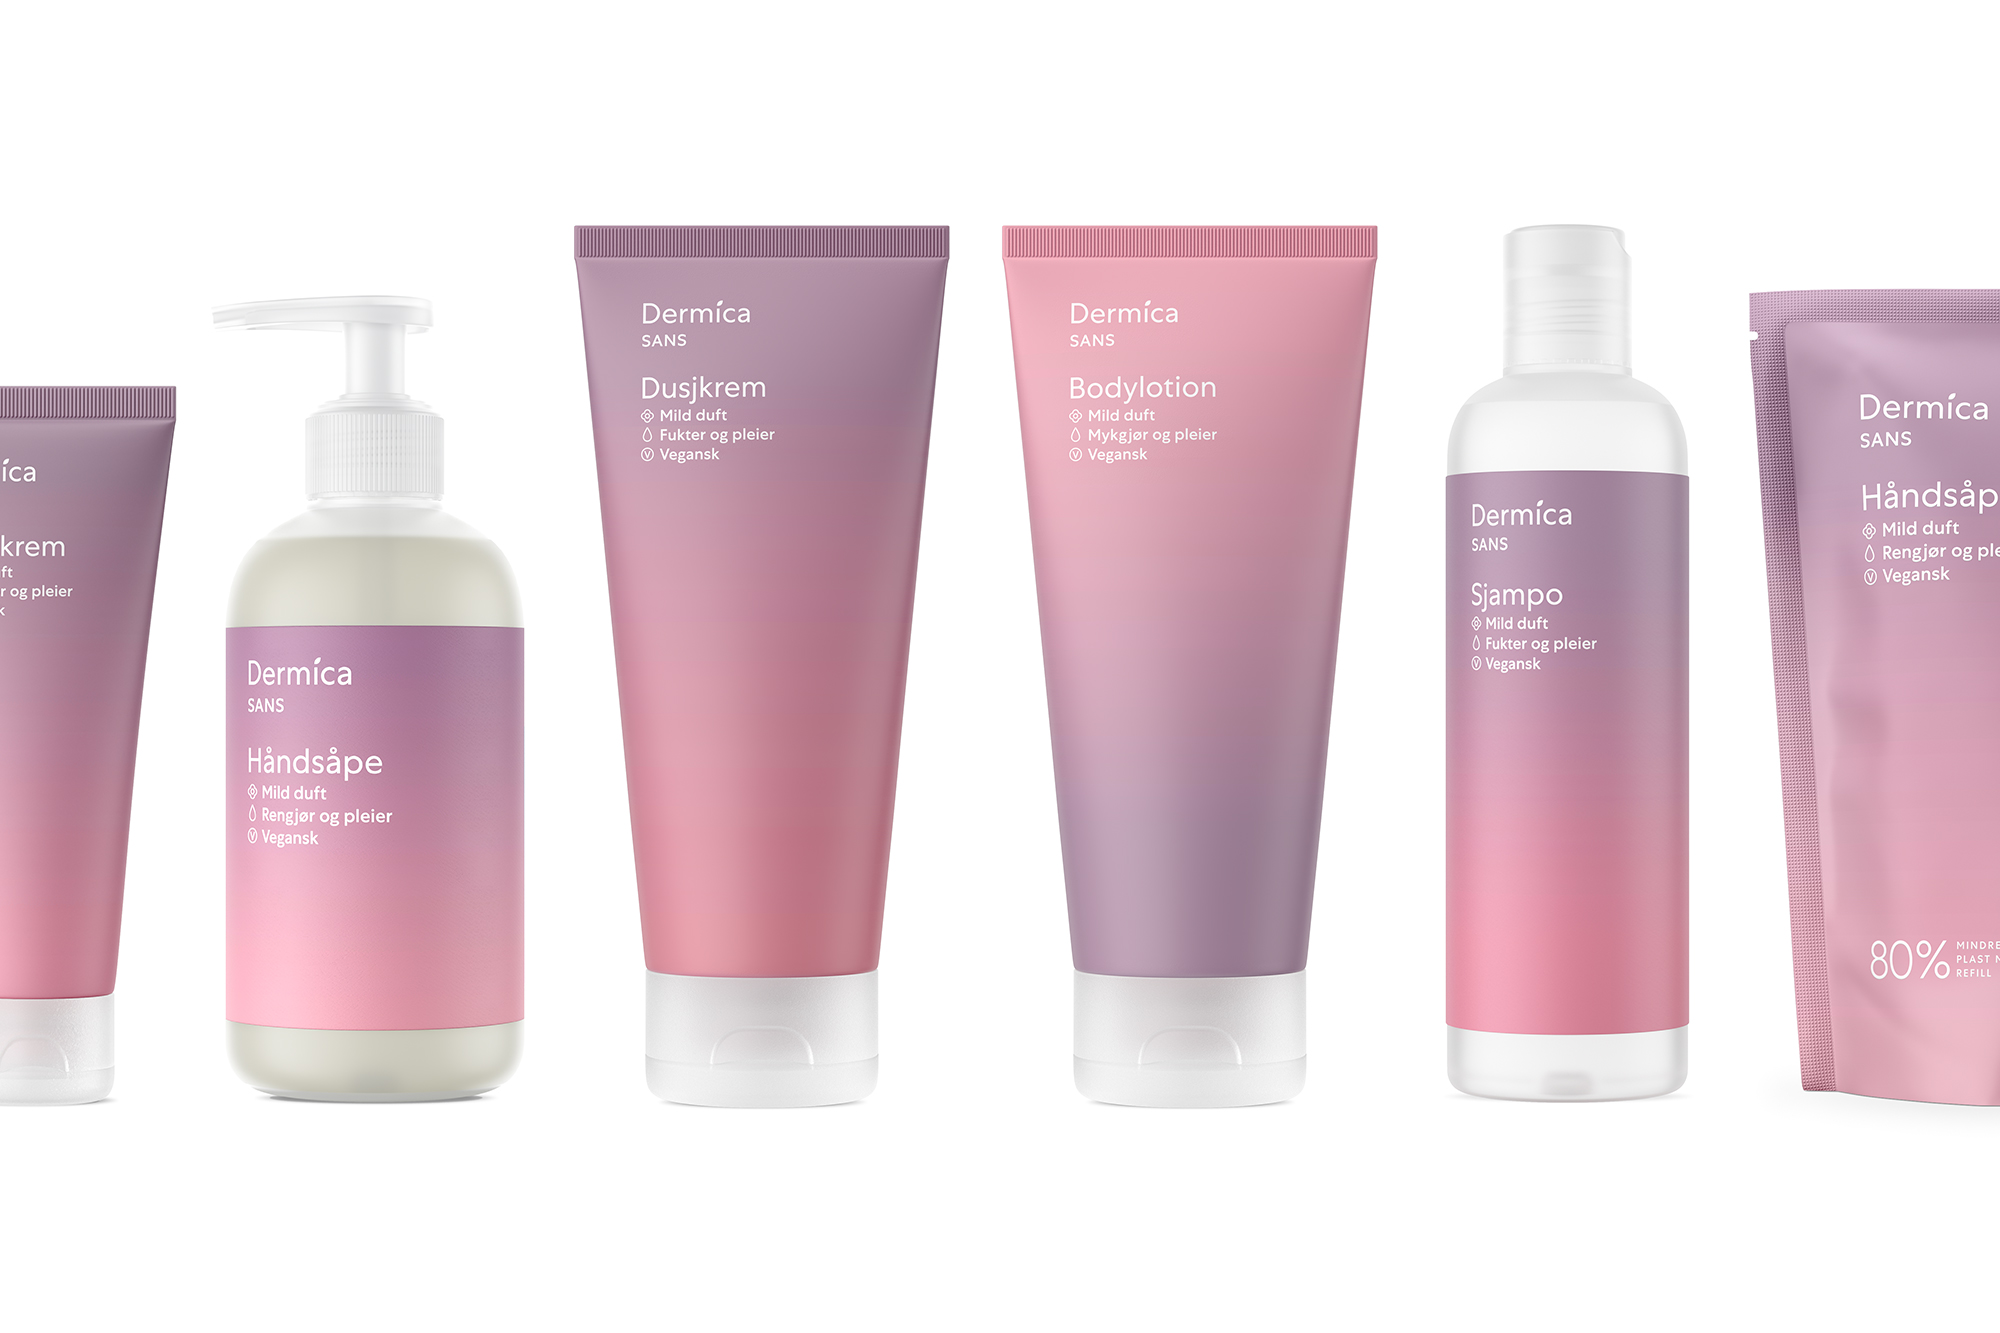 The Dermica Vegan Skincare is Inspired by the Gradient